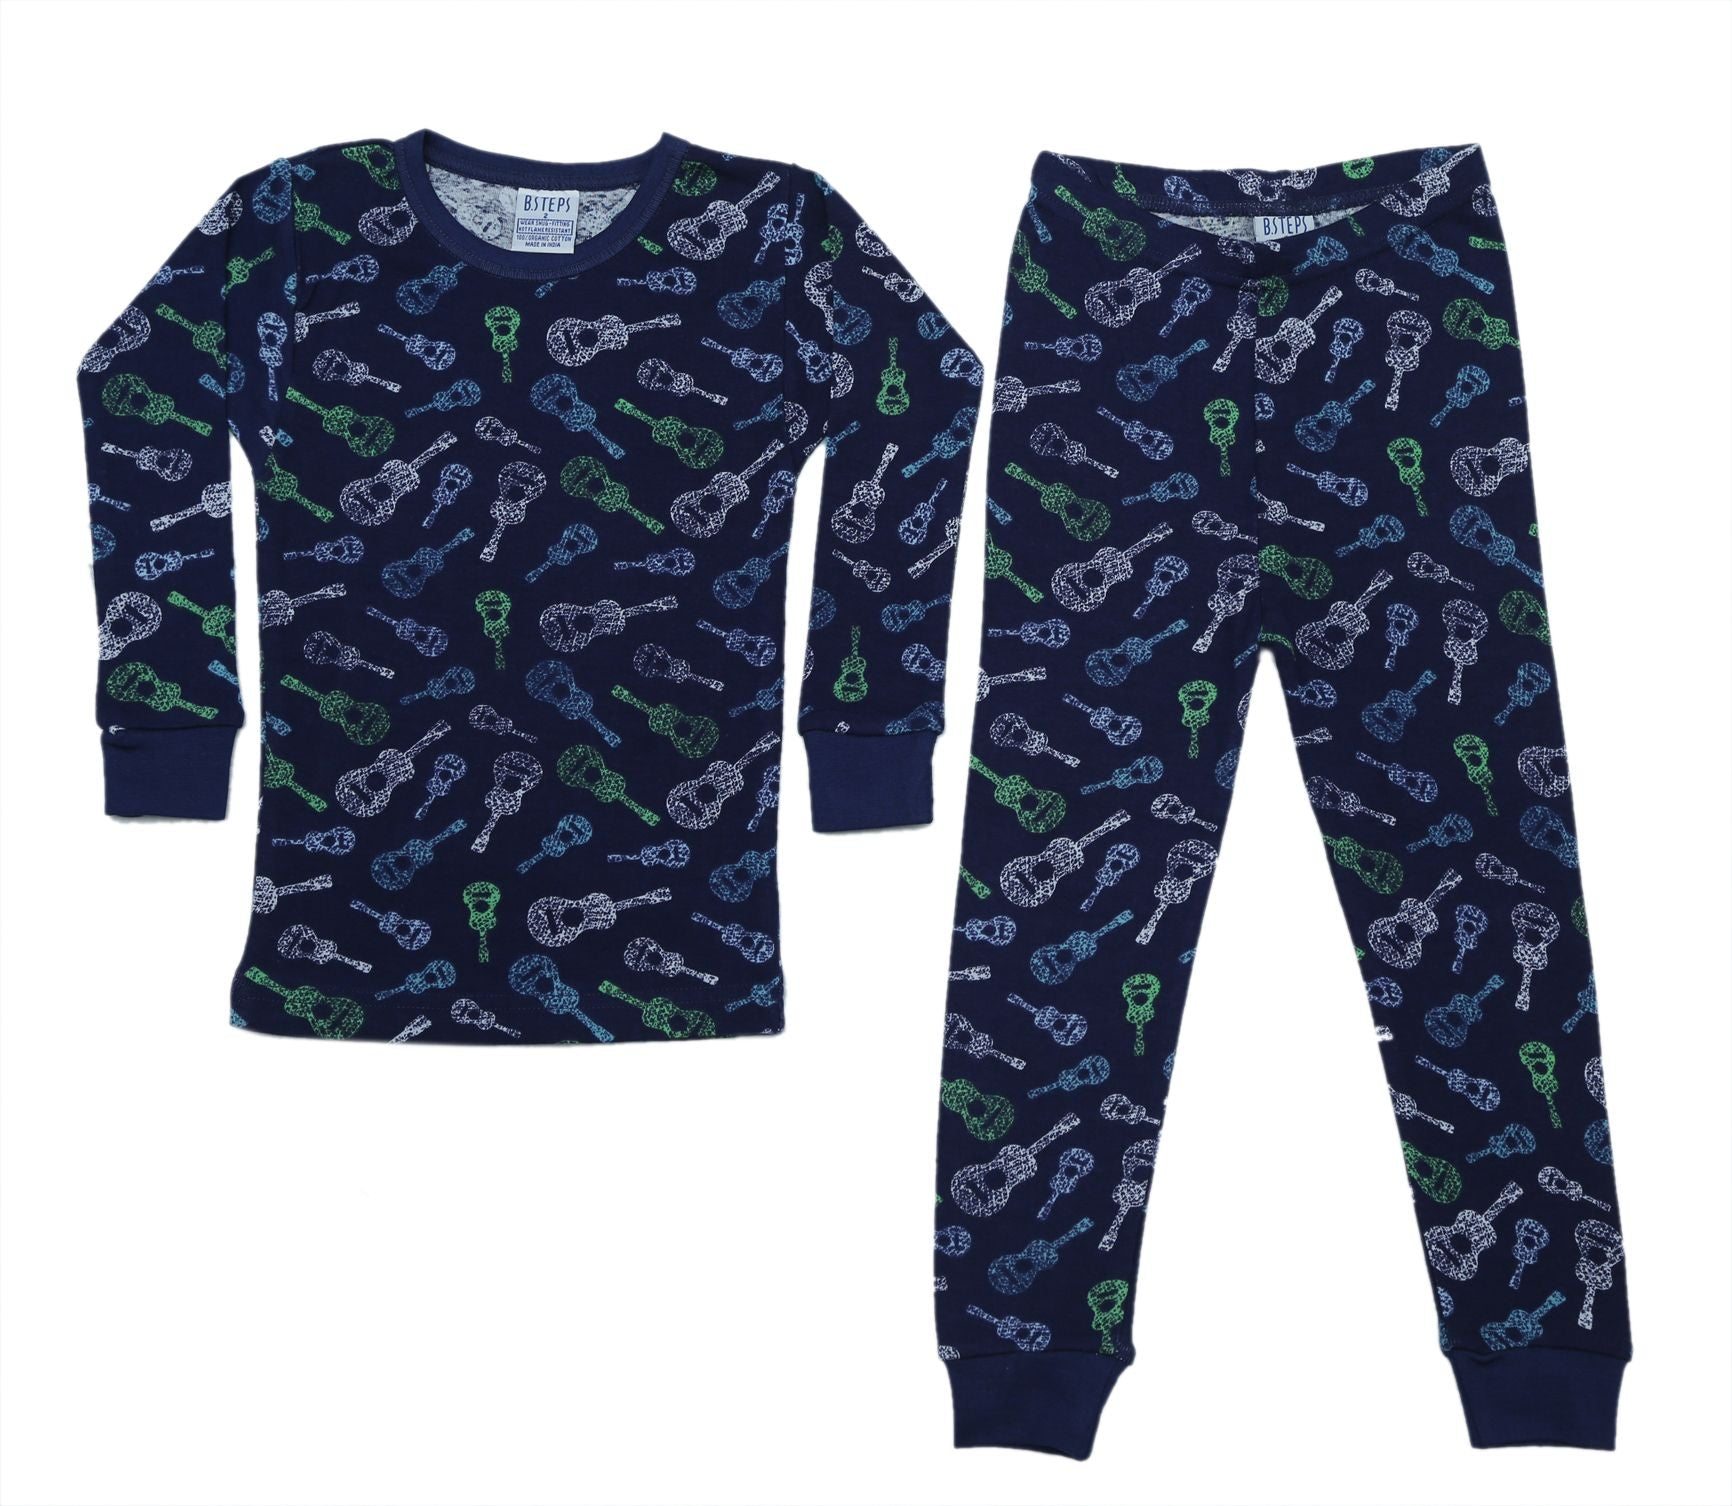 New BSteps Pajamas - Guitars on Navy (4696958763083)